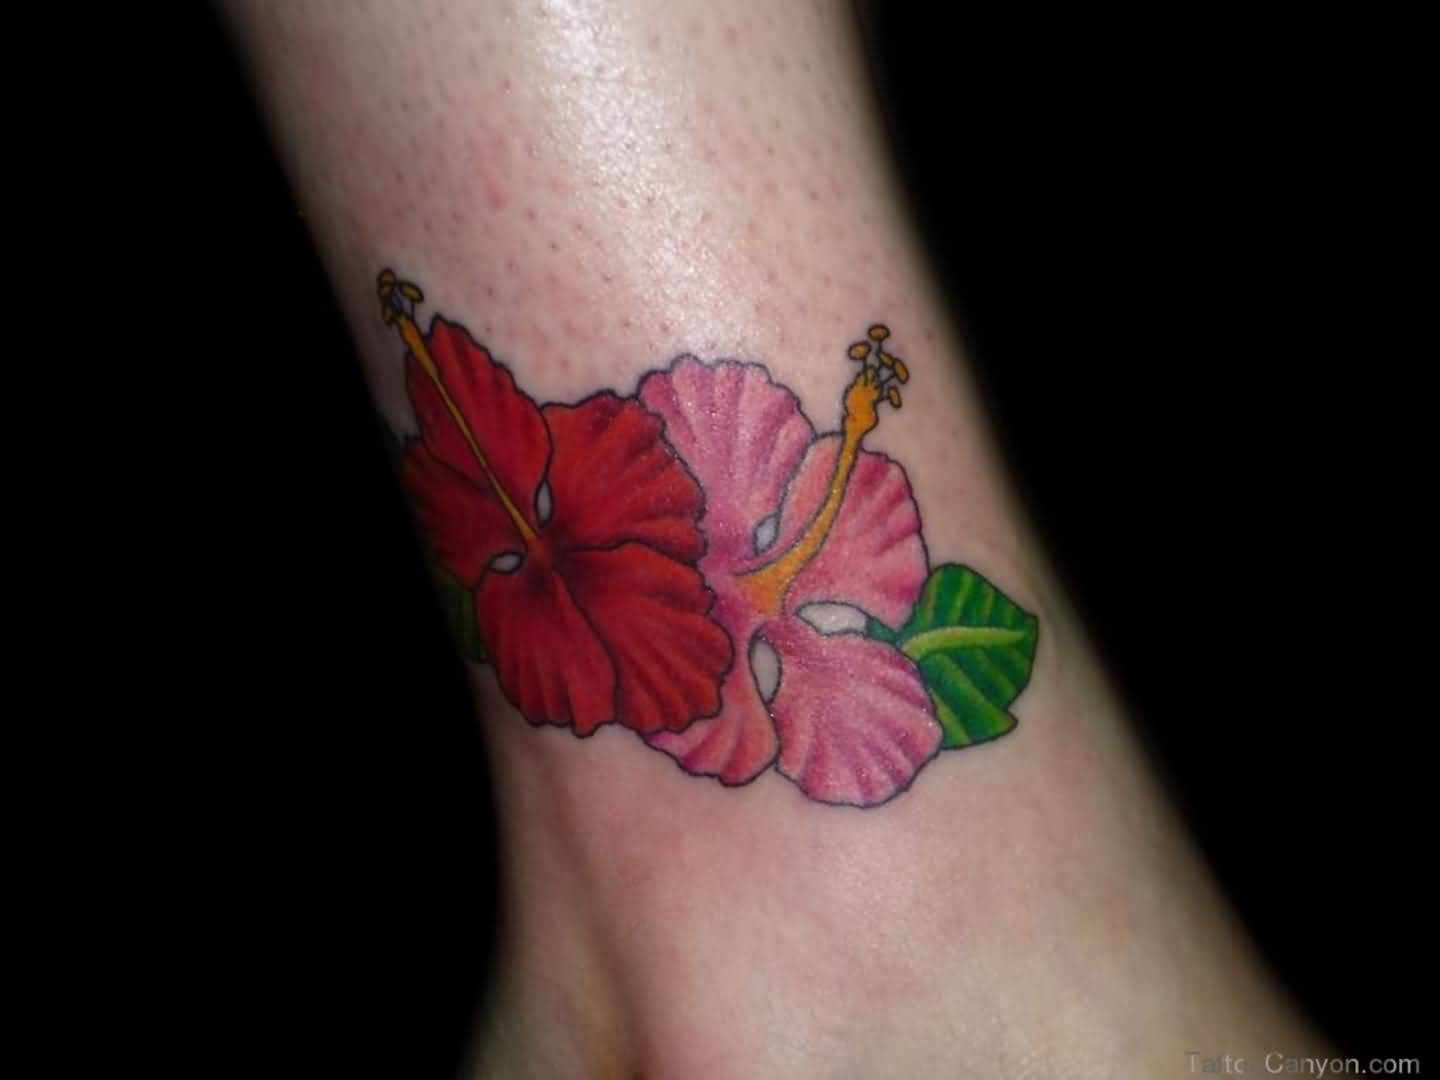 Lovely simple hibiscus flower tattoo design image make on ankle lovely simple hibiscus flower tattoo design image make on ankle izmirmasajfo